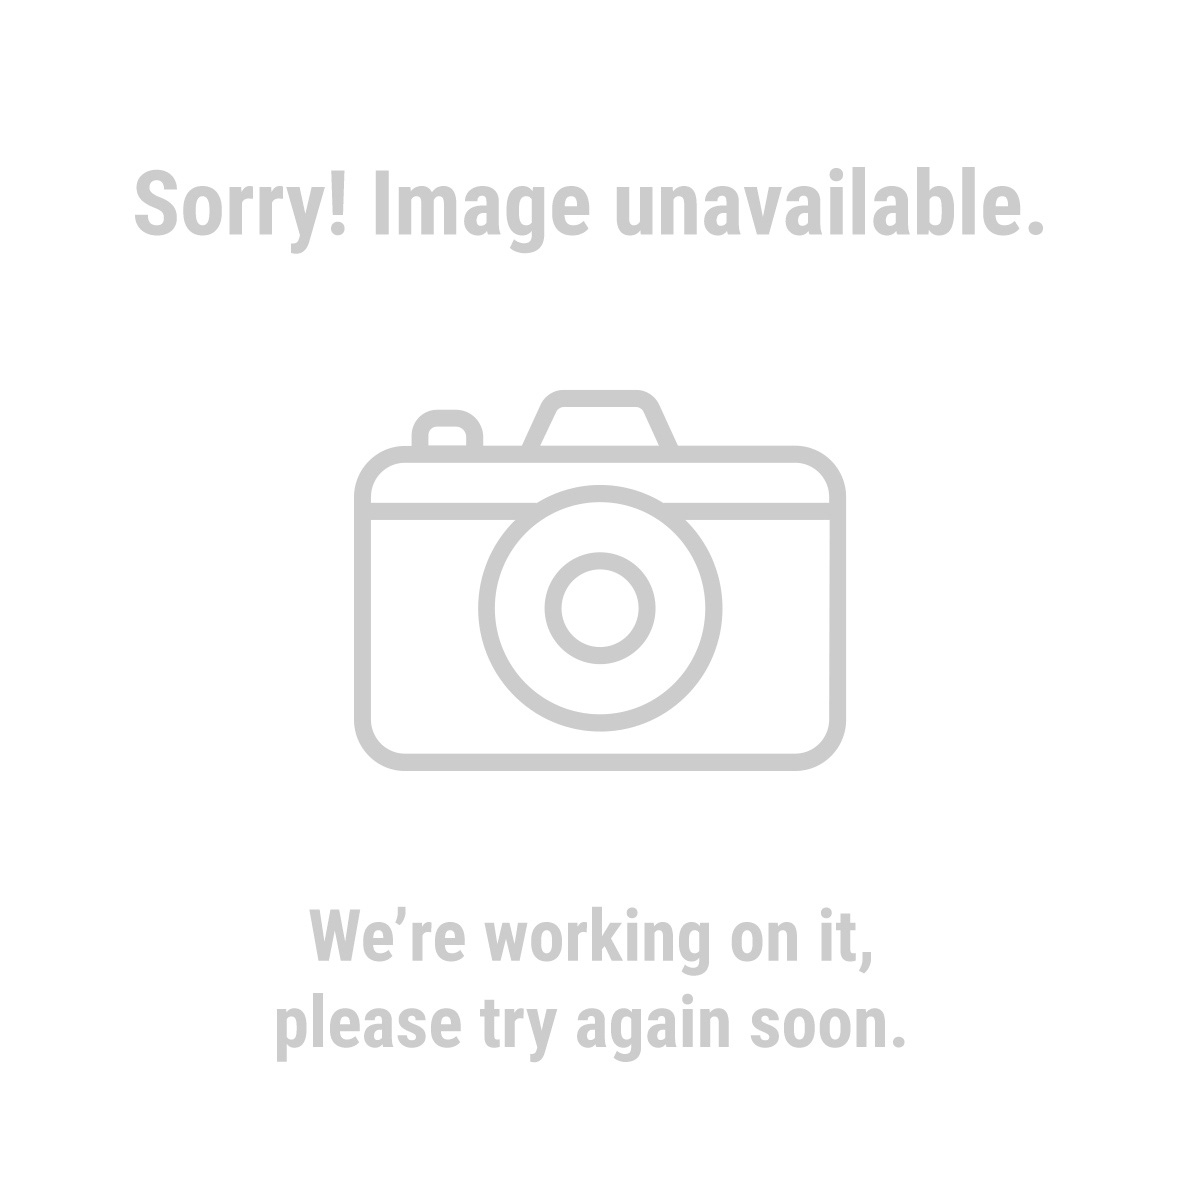 "Haul-Master 94564 1720 Lb. Capacity Super Duty 48"" x  96"" Utility Trailer with 12"" Five Lug Wheels and Tires"